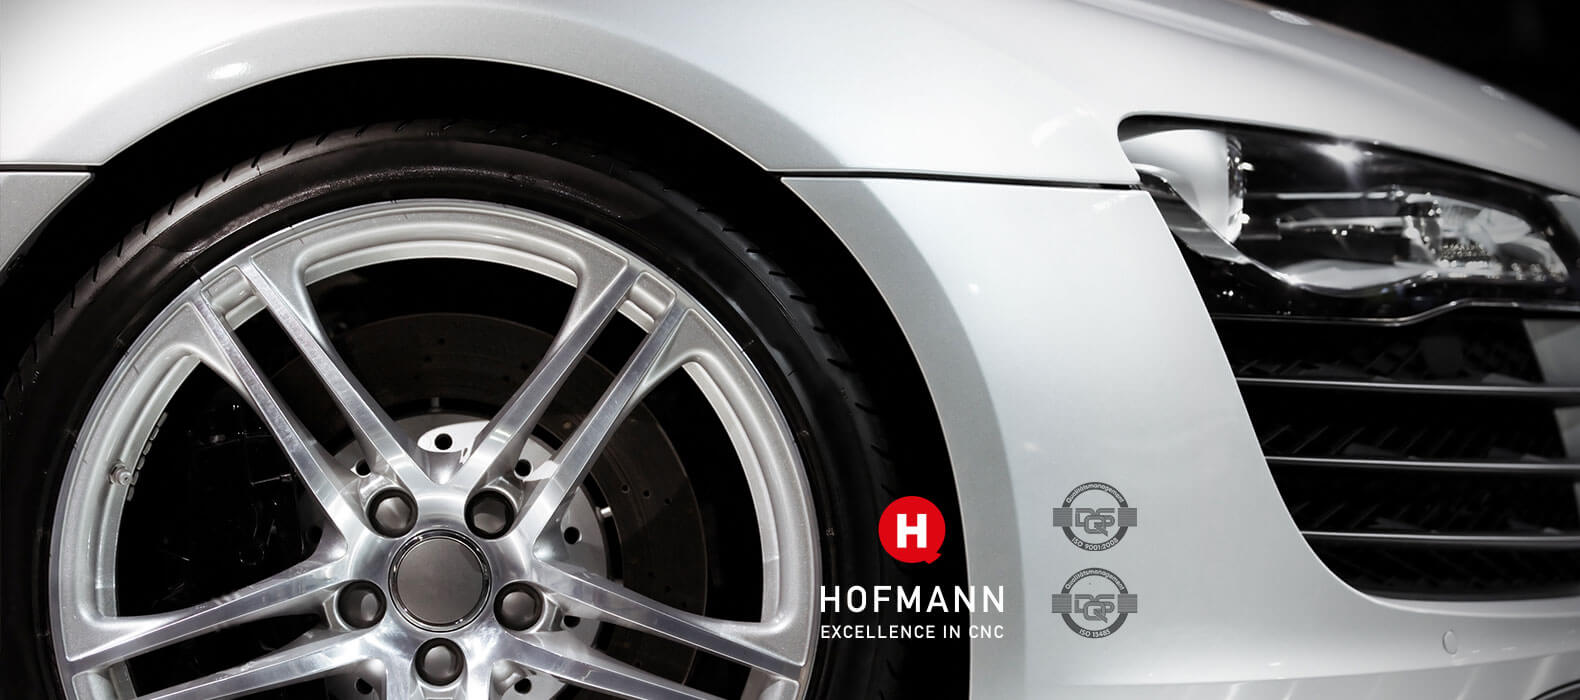 Hofmann CNC · Automotive · E-Technik